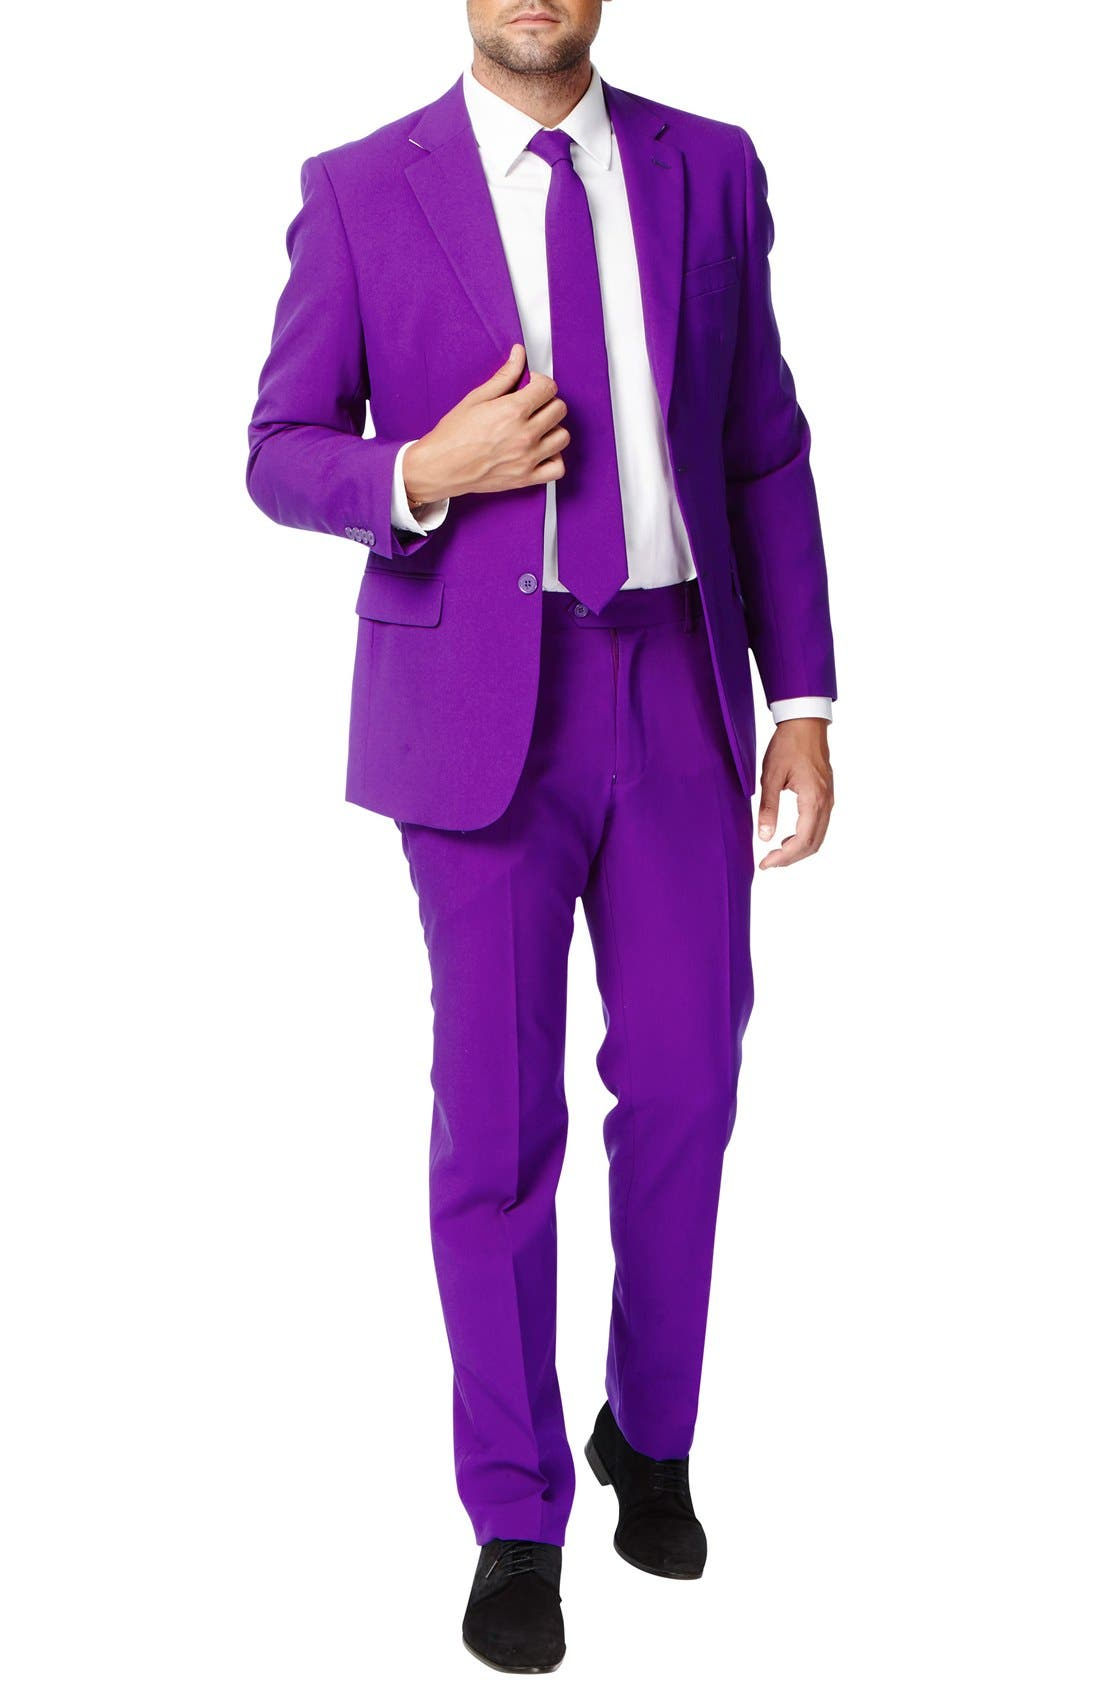 Alternate Image 1 Selected - OppoSuits 'Purple Prince' Trim Fit Two-Piece Suit with Tie